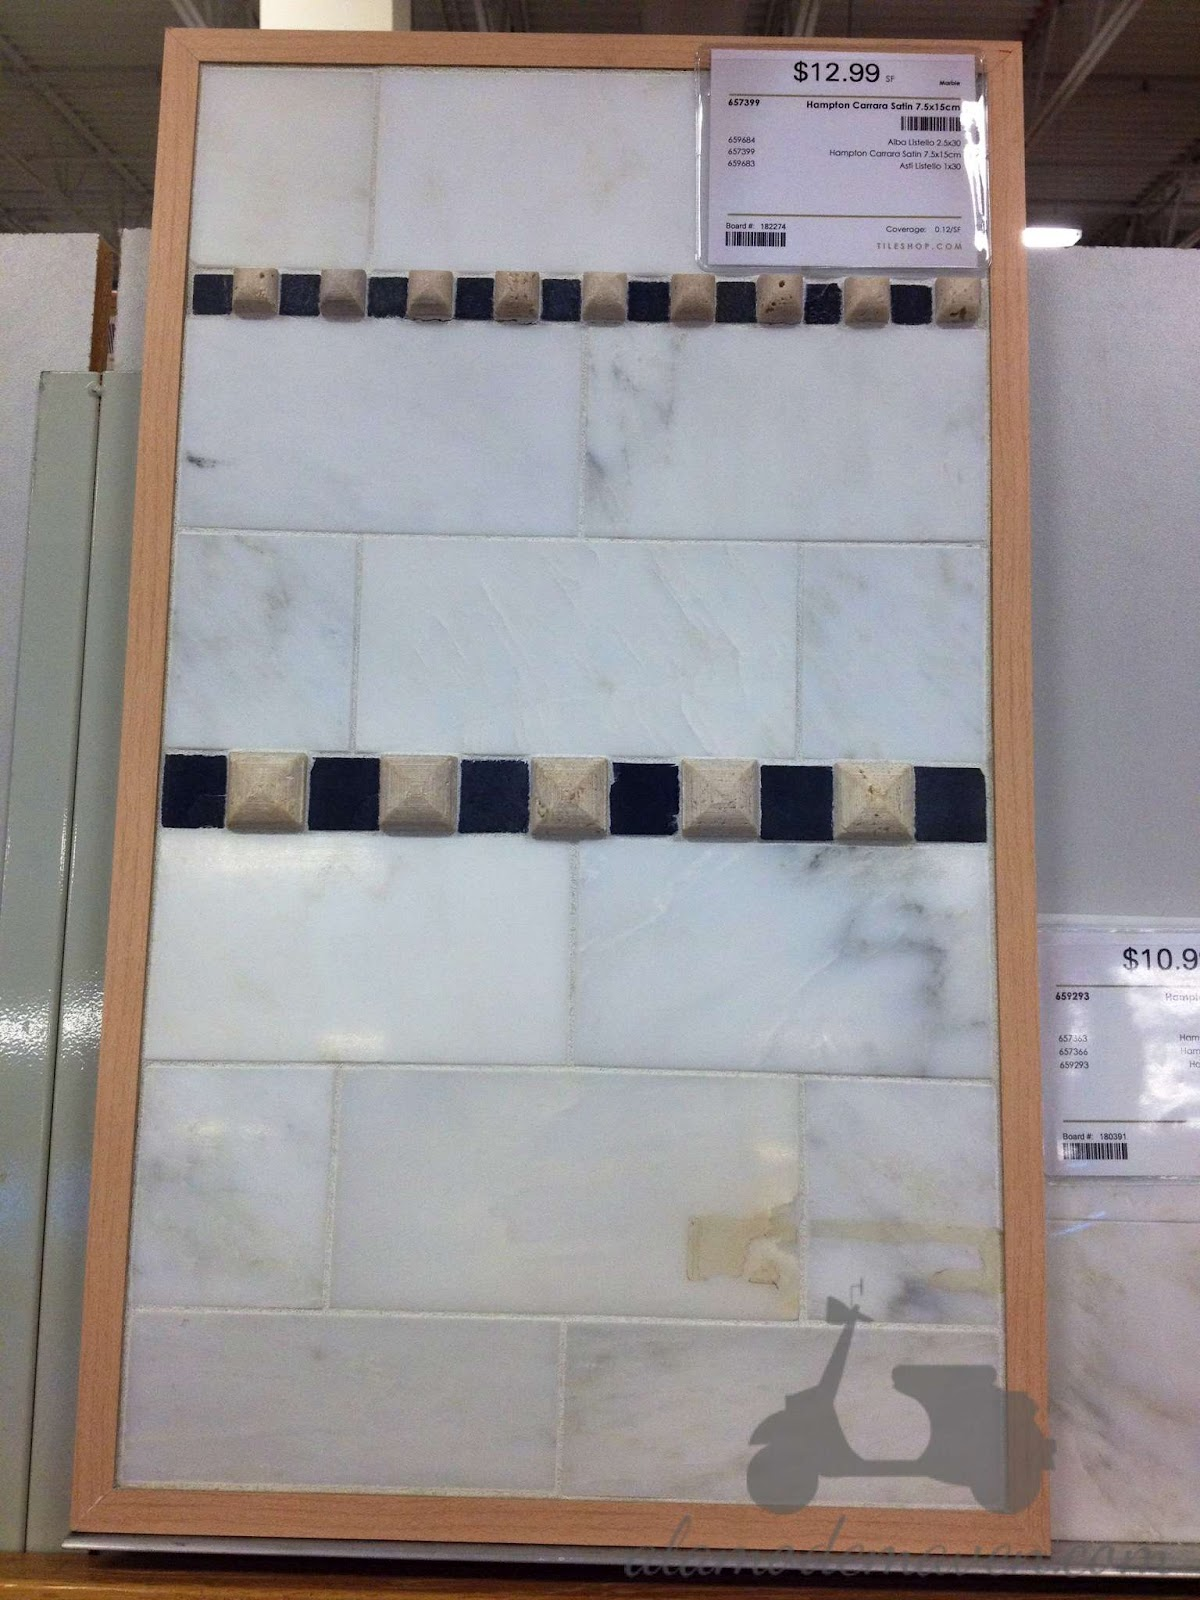 Quartz That Looks Like Carrara Marble. Free Carrara Marble Color ...